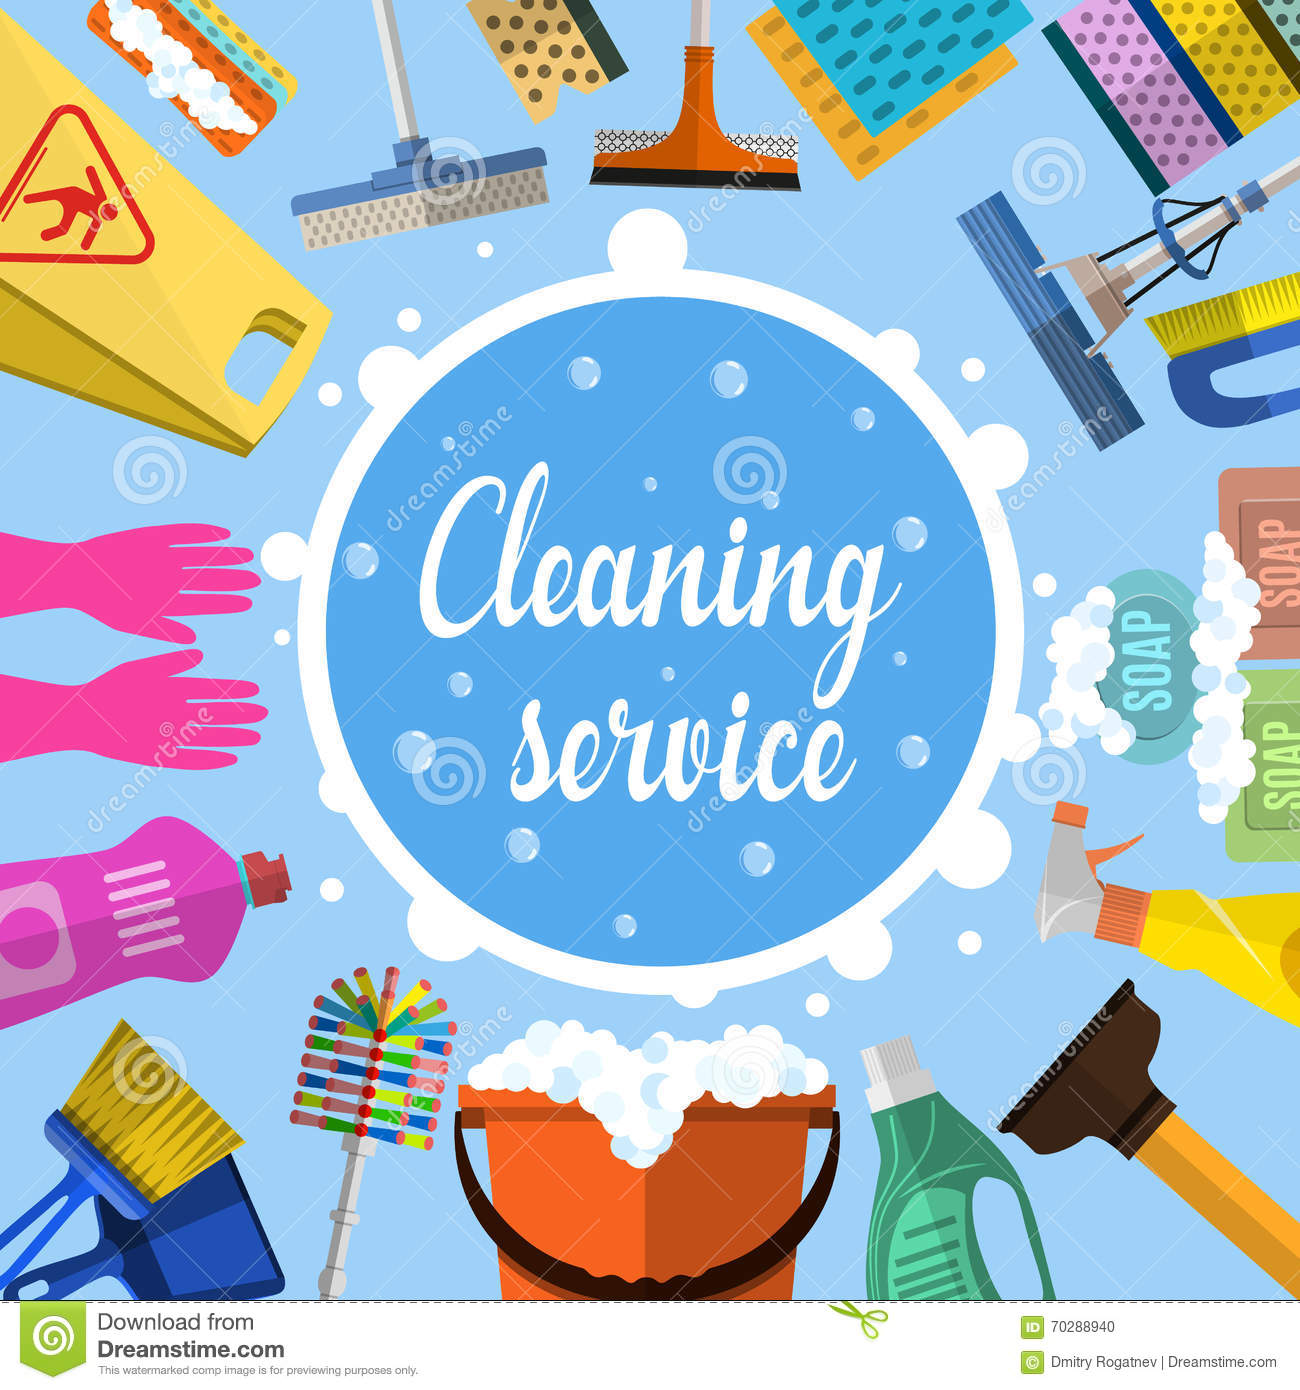 Cleaning Service Flat Illustration Stock Vector ...